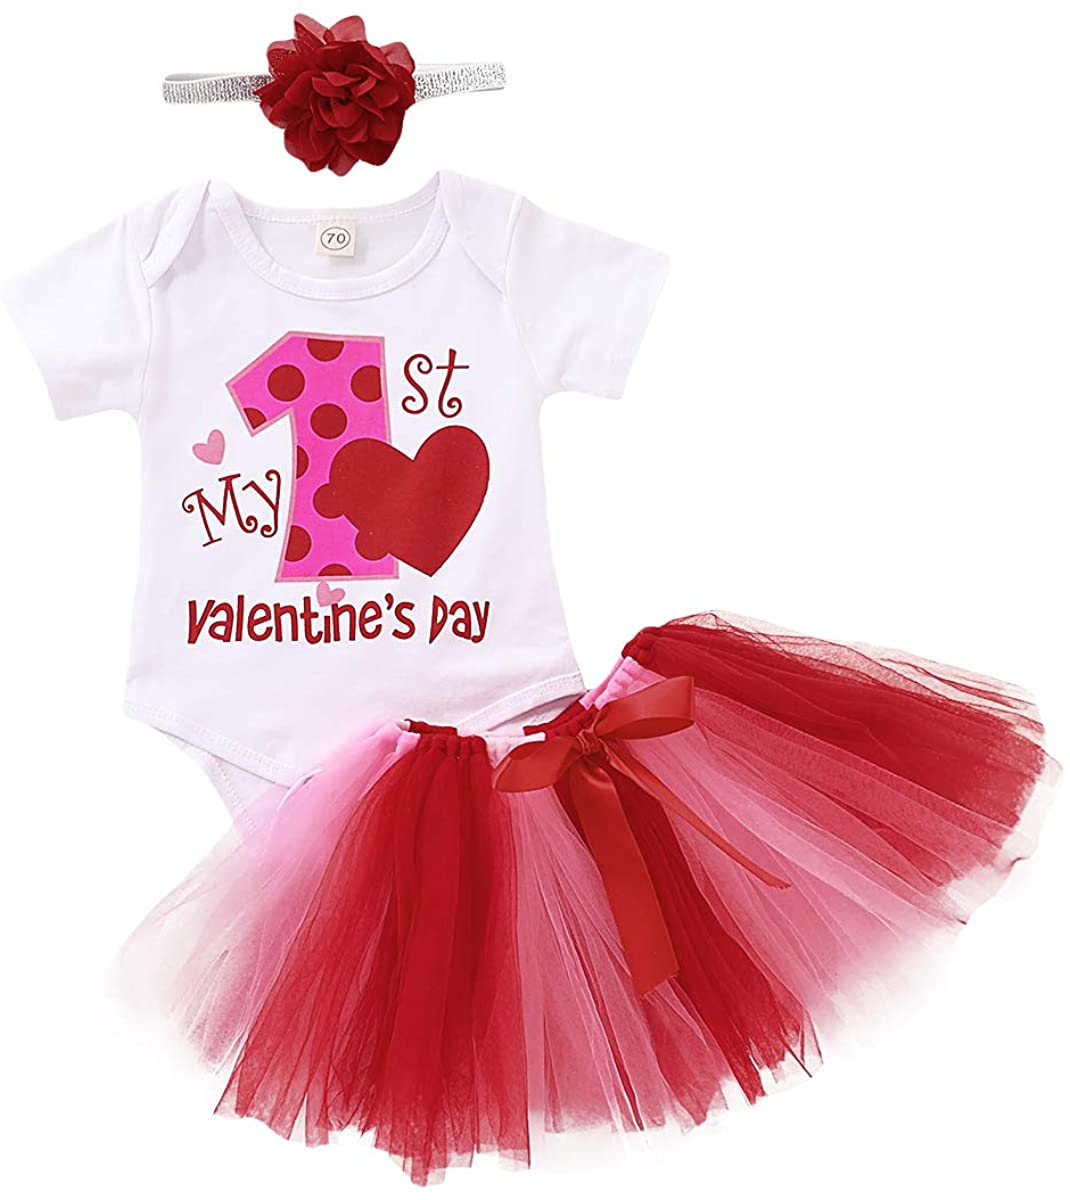 Valentine's Day Outfits Newborn Infant Baby Girls My First Valentine's Day Romper Bowknot Tutu Skirt Headband Clothing Sets